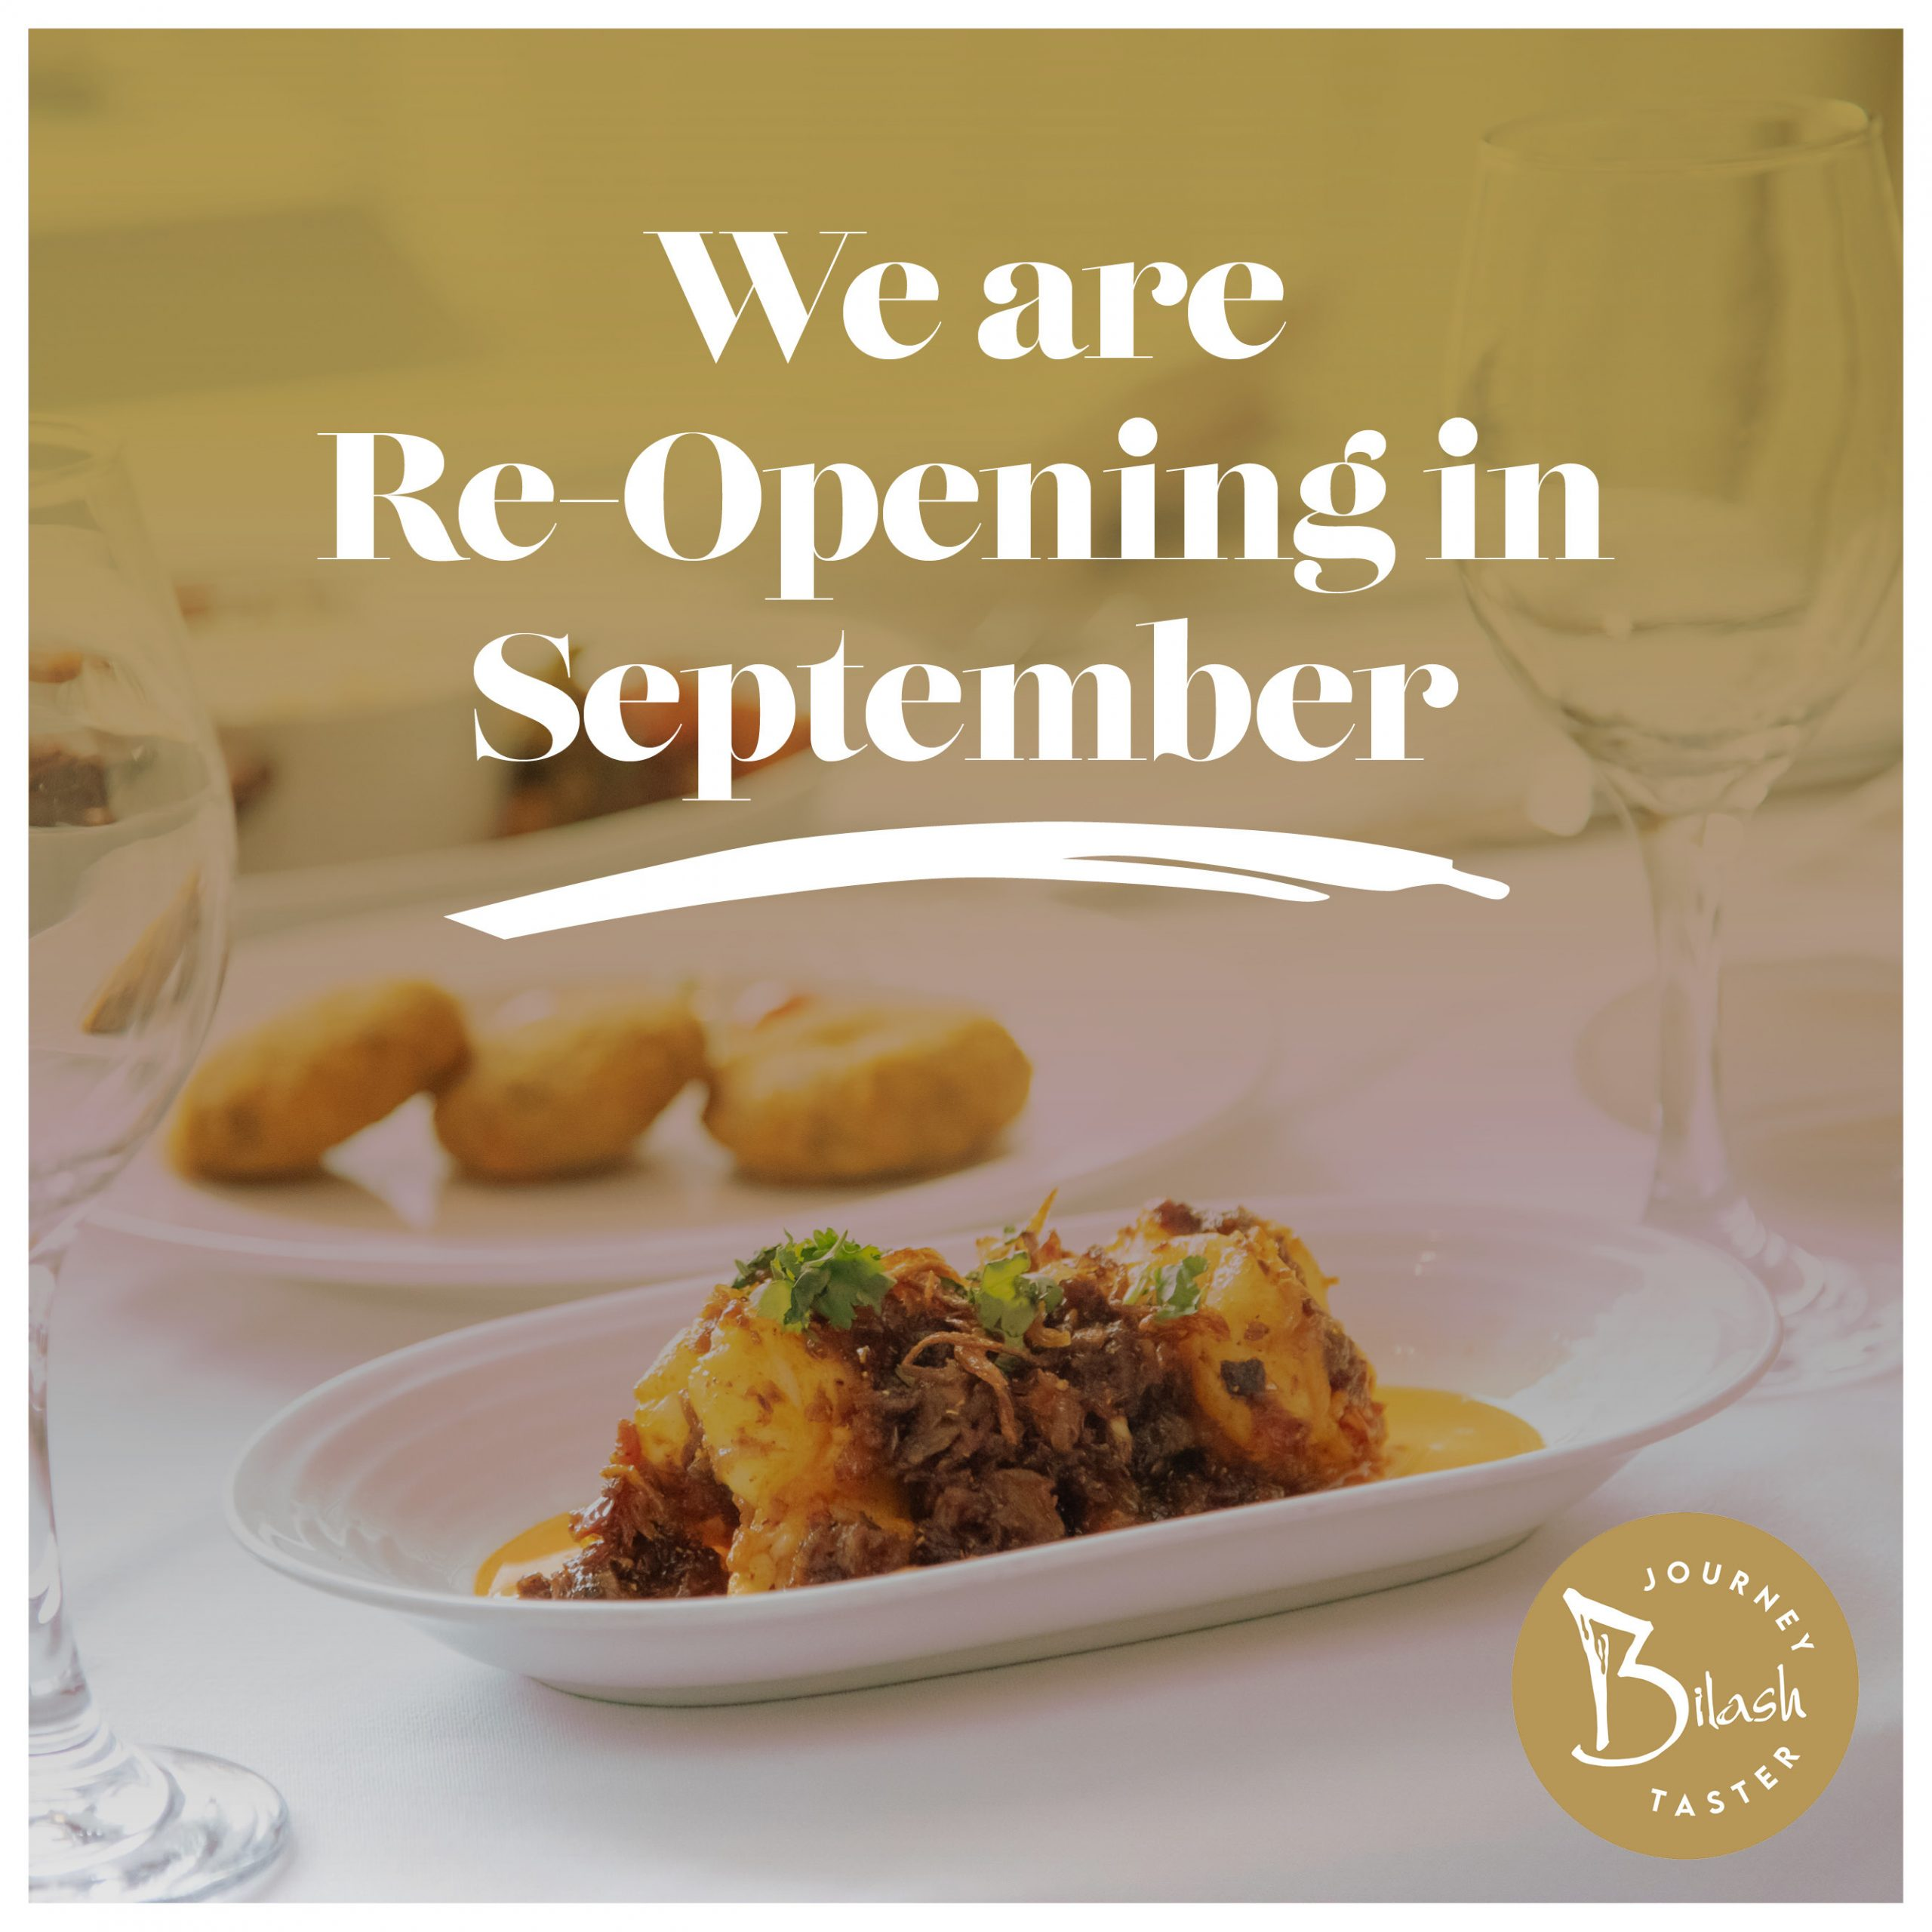 Re-Opening Menu – 4 course Journey Taster